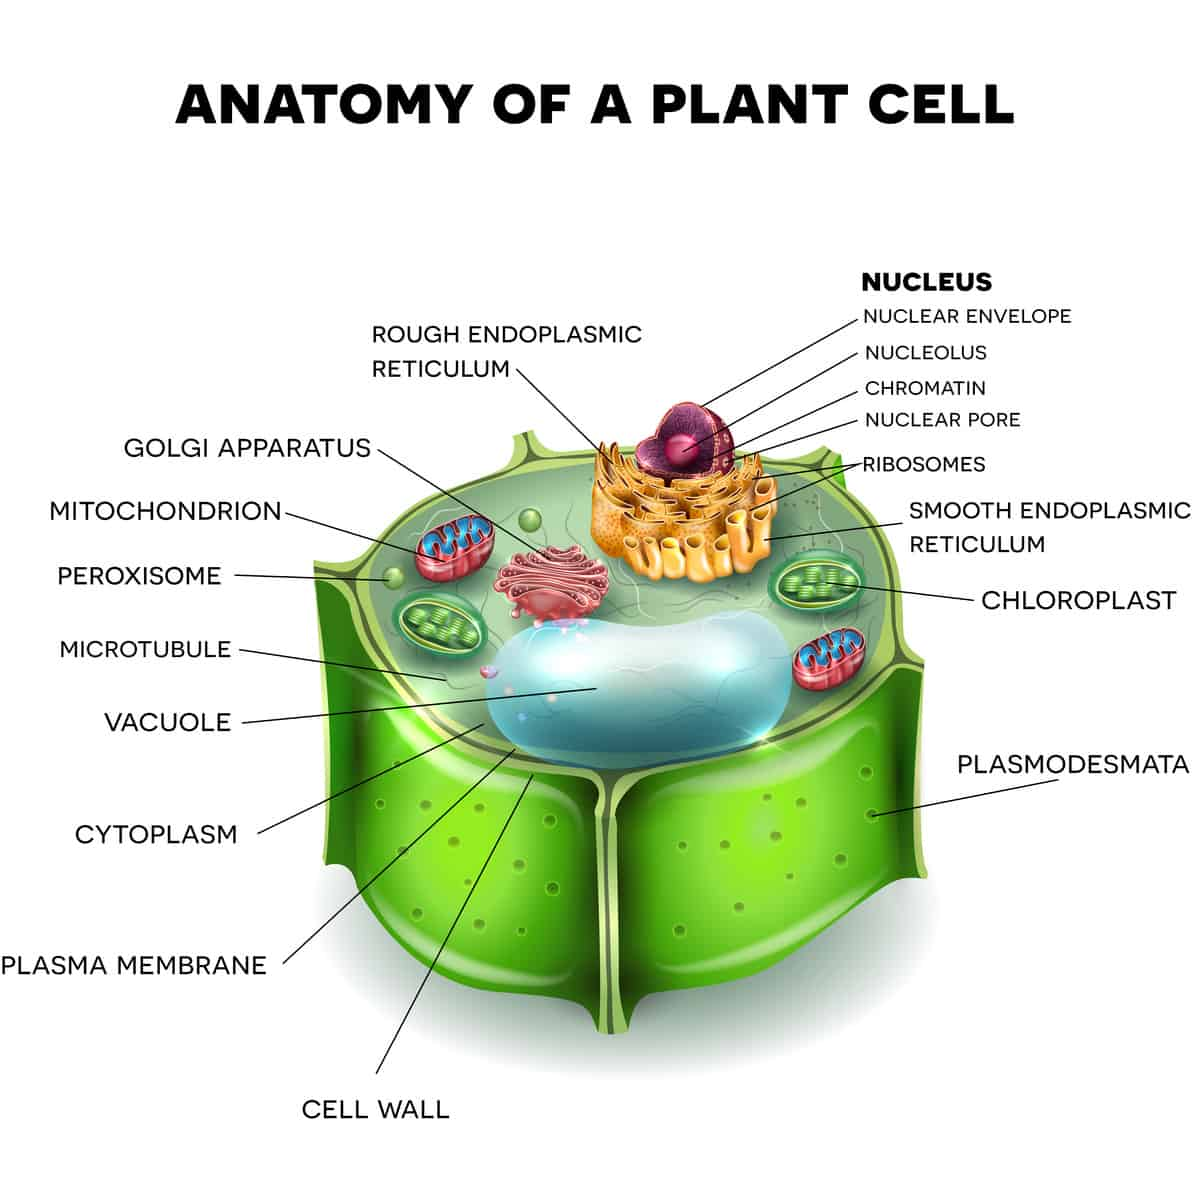 Parts of a flower and plant 7 diagrams flower cell leaf stem etc illustration of a plant cell ccuart Gallery